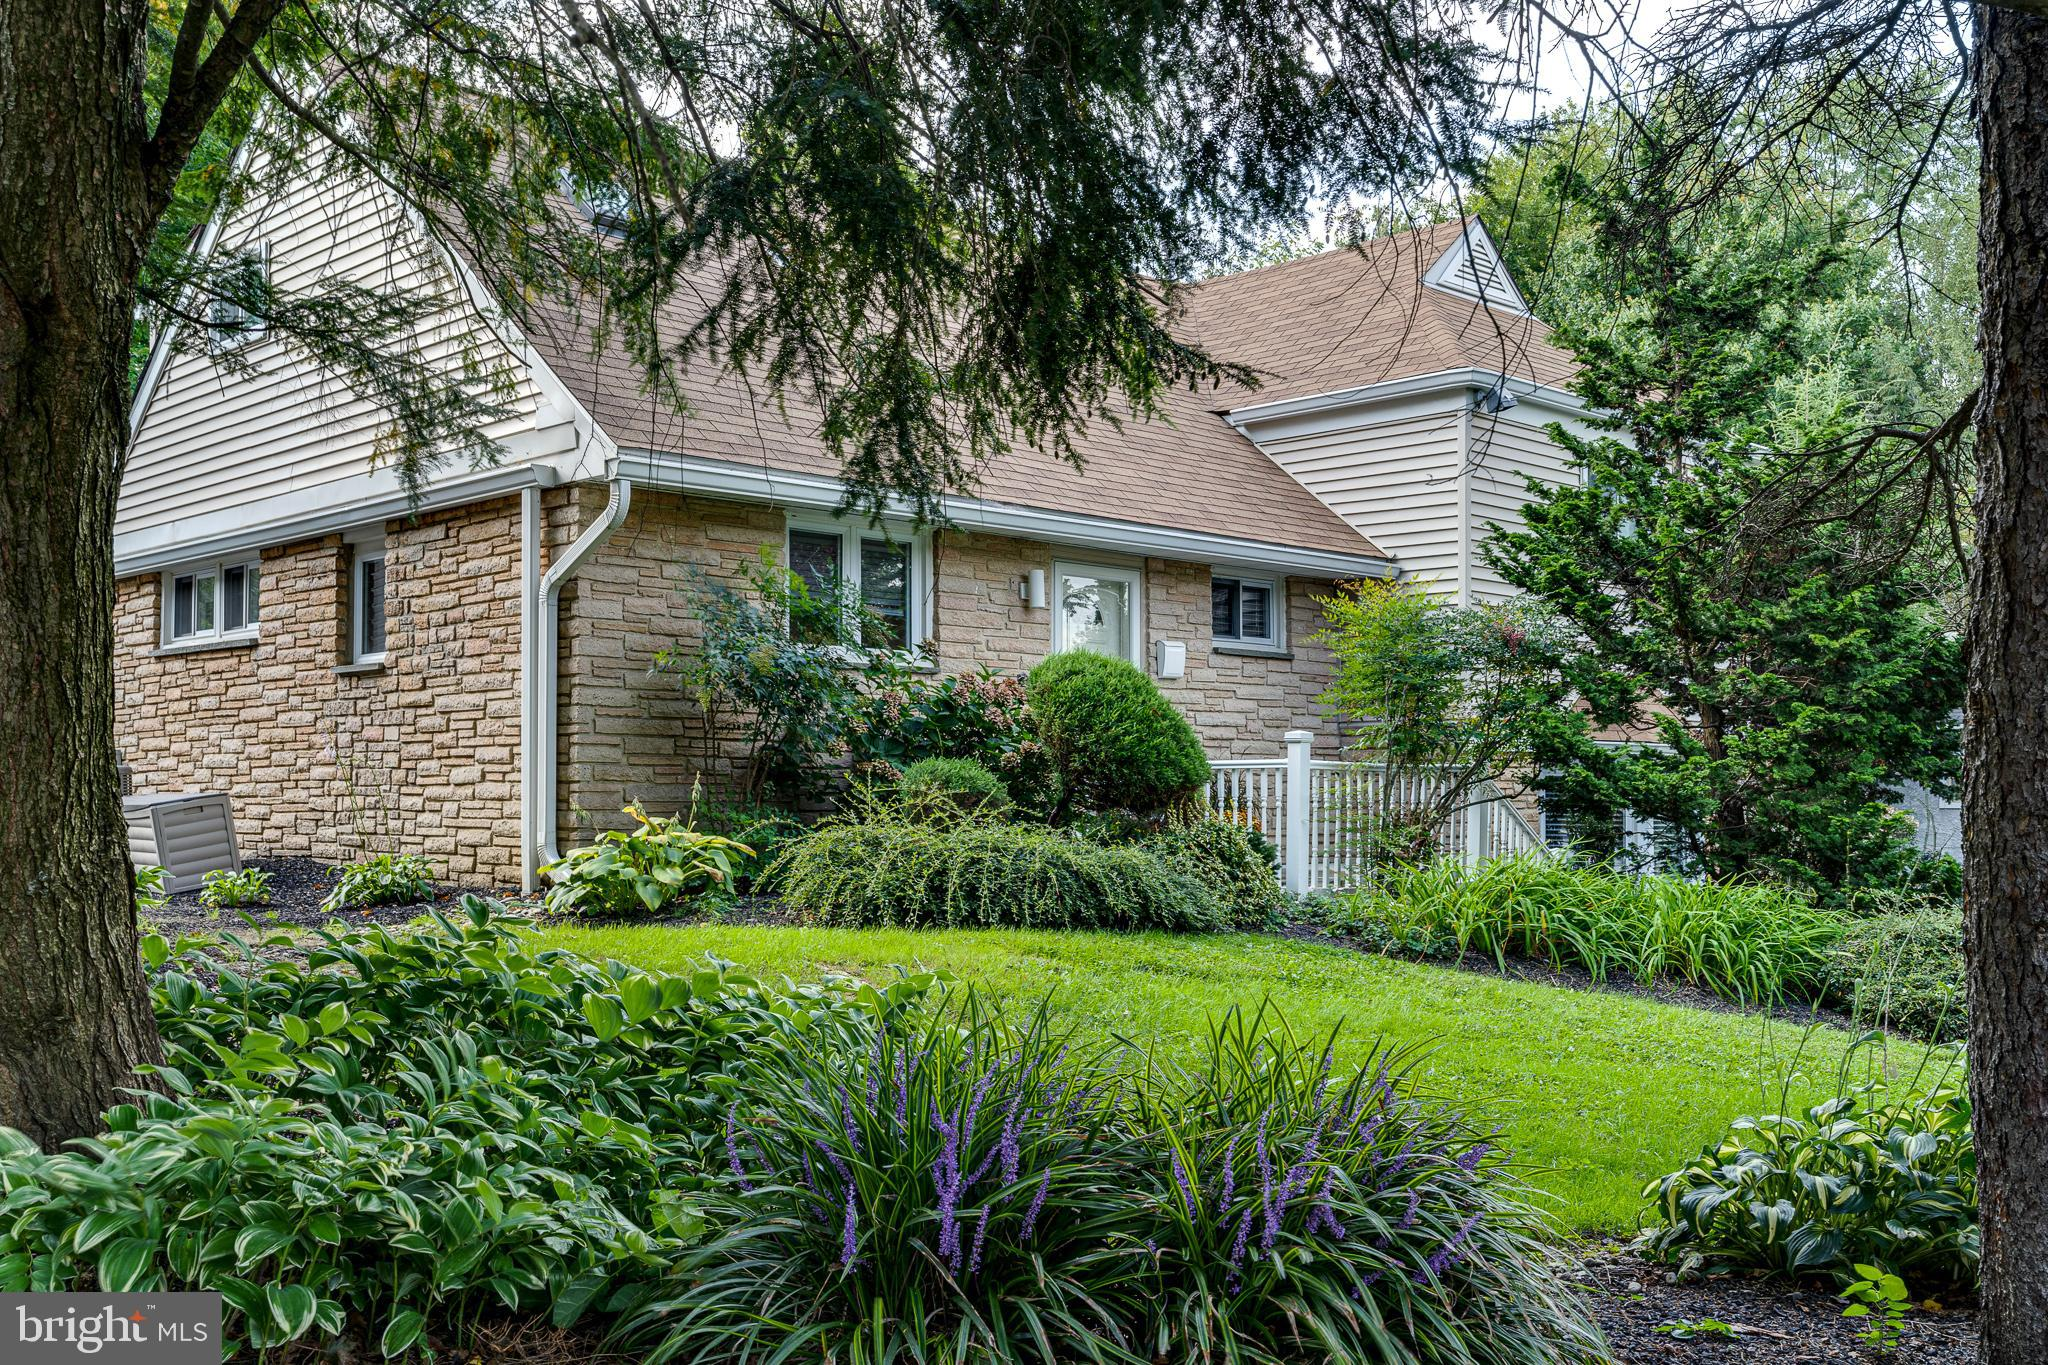 Wonderful updated multi level home in desirable College Park neighborhood of Bala Cynwyd!  This beautifully maintained & well decorated home has been updated through out.  Bright newer kitchen with white cabinetry, stainless steel appliances & white Corian counter tops.  Open Floor plan with living & dining area, wood burning fireplace, and lots of floor to ceiling windows overlooking patio, and large private landscaped rear yard, perfect for entertaining & family gatherings.  Four roomy bedrooms, large New Master Bathroom & New Kids Bathroom complete the upper Level.  Lower Level boasts a spacious family room and adjacent laundry room, with rear access to yard.  Most recent updates includes, newer windows throughout, refinished hardwood floors, updated 200 amp service,  HVAC 2020,  hot water heater 2017, renovated bathrooms 2018, renovated family room -lower level 2018.  This homes shows beautifully !  Close to Blue Ribbon Award Winning Lower Merion Schools, walking distance to Bala Cynwyd Park, public transportation,  and the Cynwyd Heritage Trail.  Easy access to I-76, close to Center City- not to be missed.